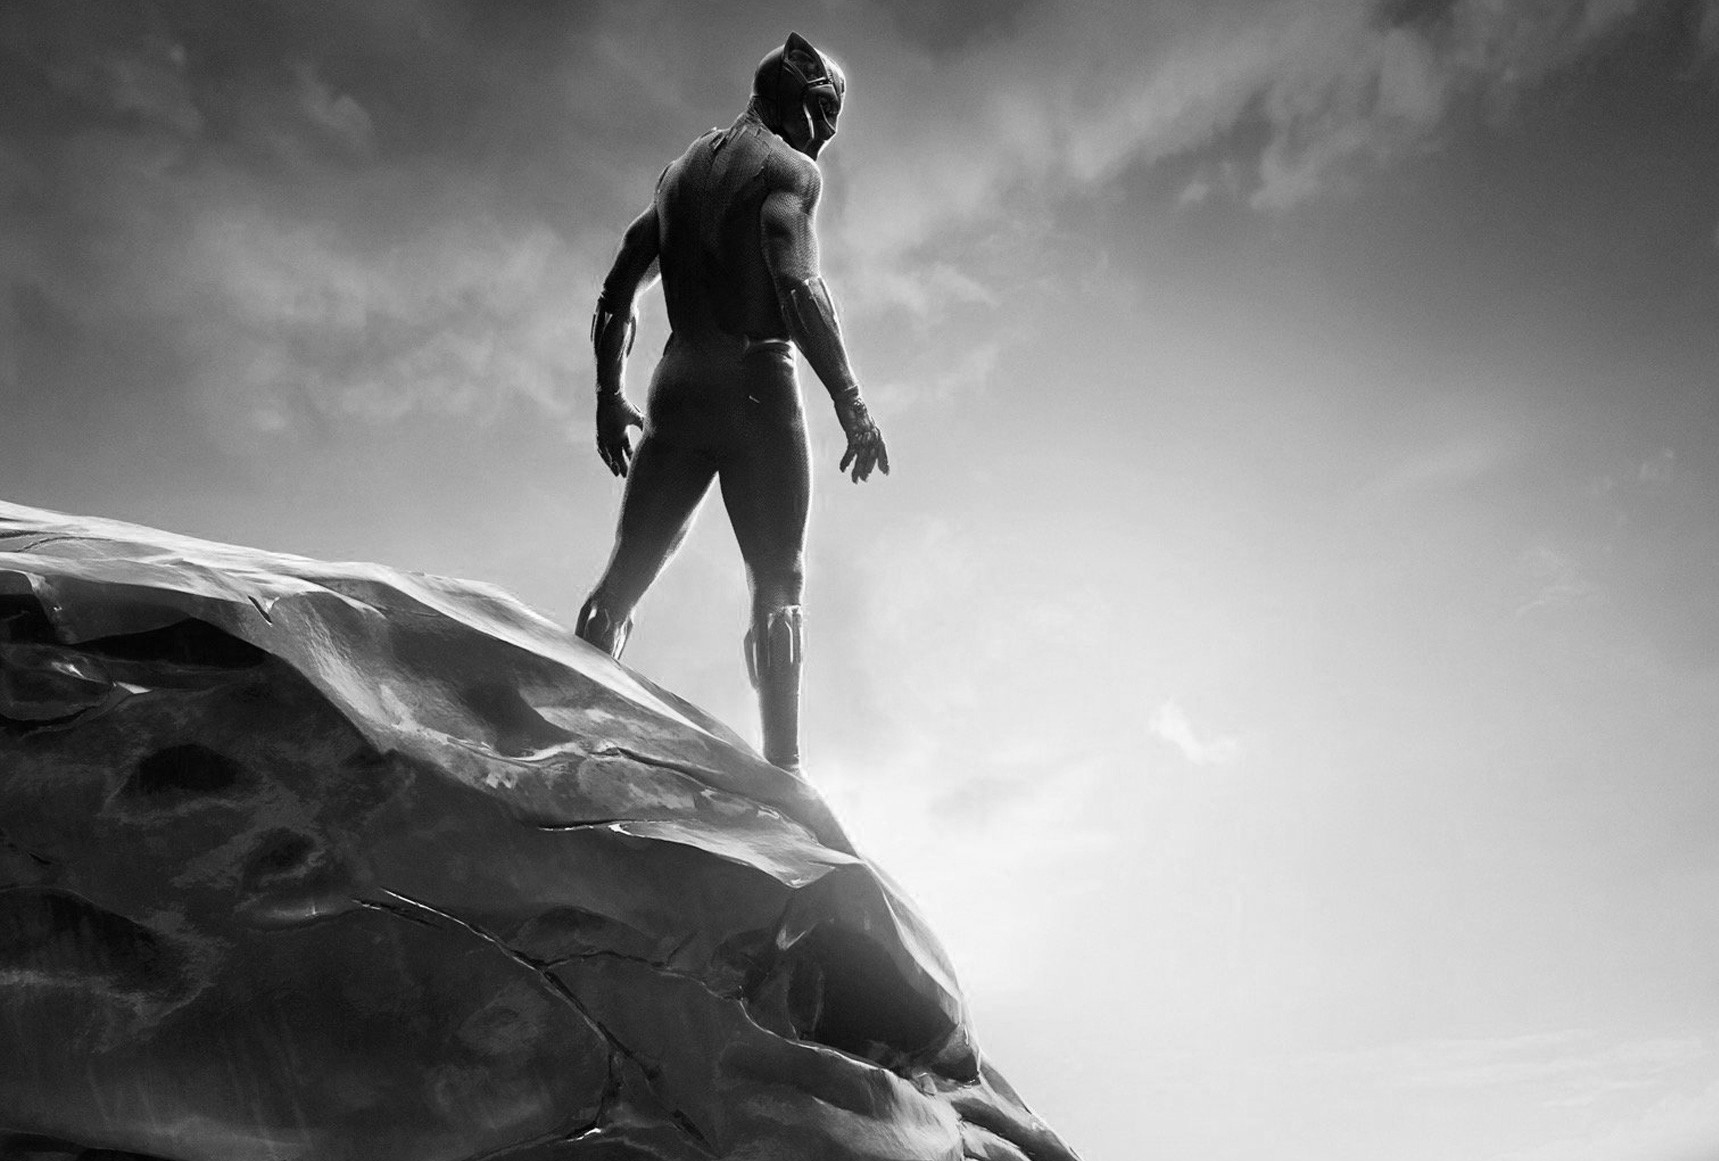 Free Download 2018 Black Panther Movie Wallpapers New Hd Wallpapers 1719x1161 For Your Desktop Mobile Tablet Explore 80 Black Panther Movie Wallpapers Black Panther Movie Wallpapers Black Panther Background Black Panther Wallpaper